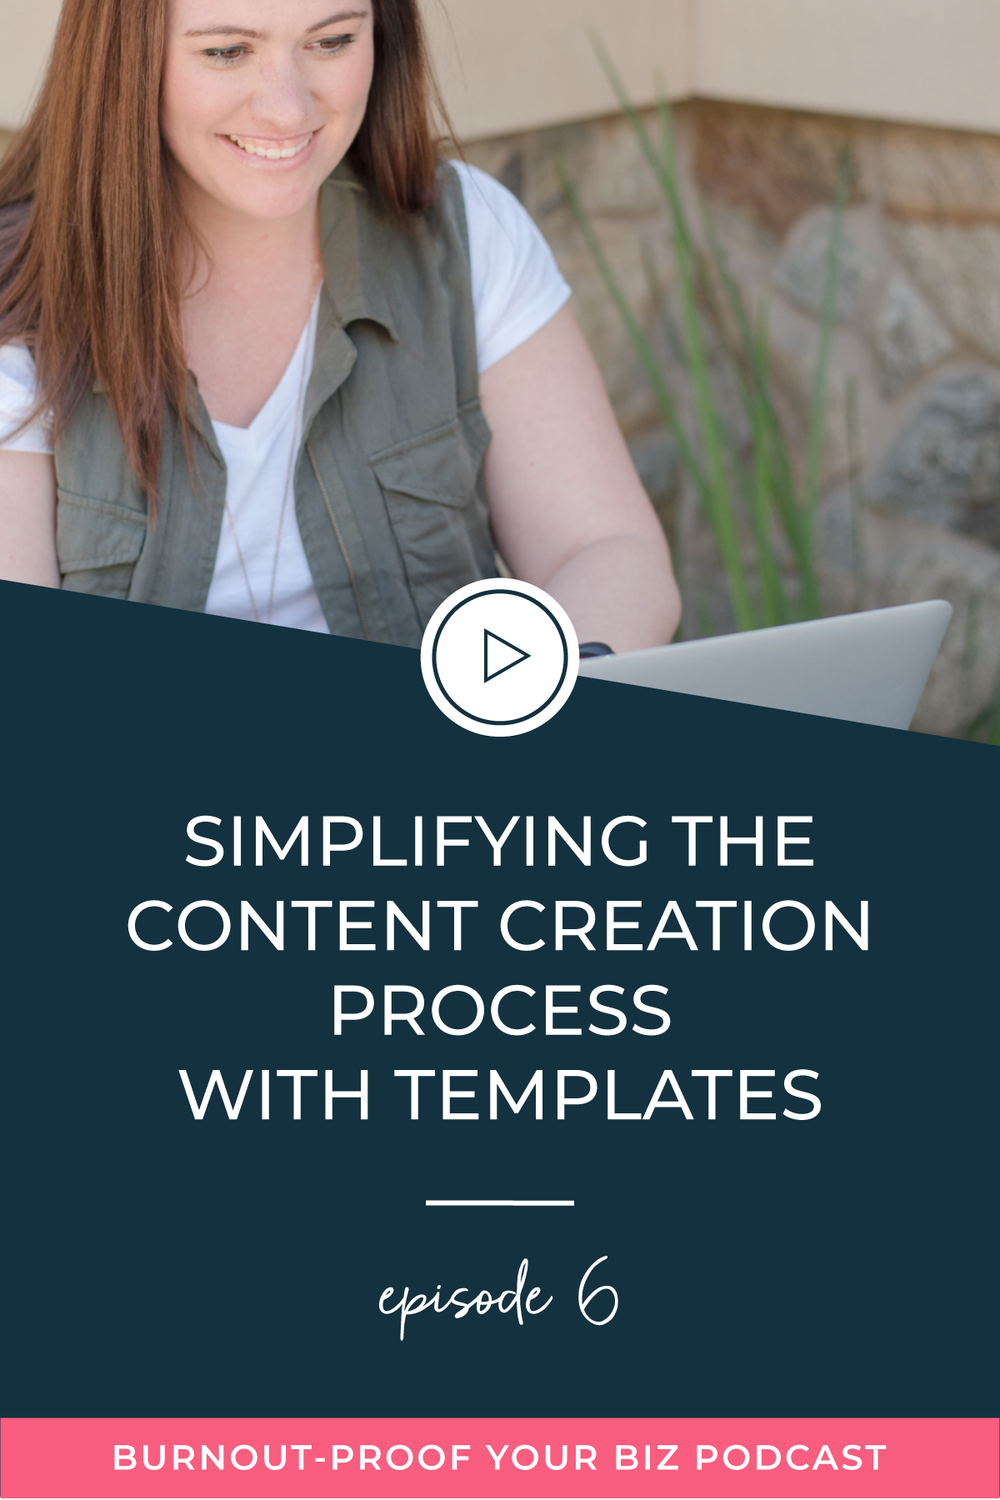 Burnout-Proof Your Biz Podcast with Chelsea B Foster   Episode 006 - Simplifying the Content Creation Process with Templates   Learn how to run your biz and live your dream life on your own terms without the fear of burnout.